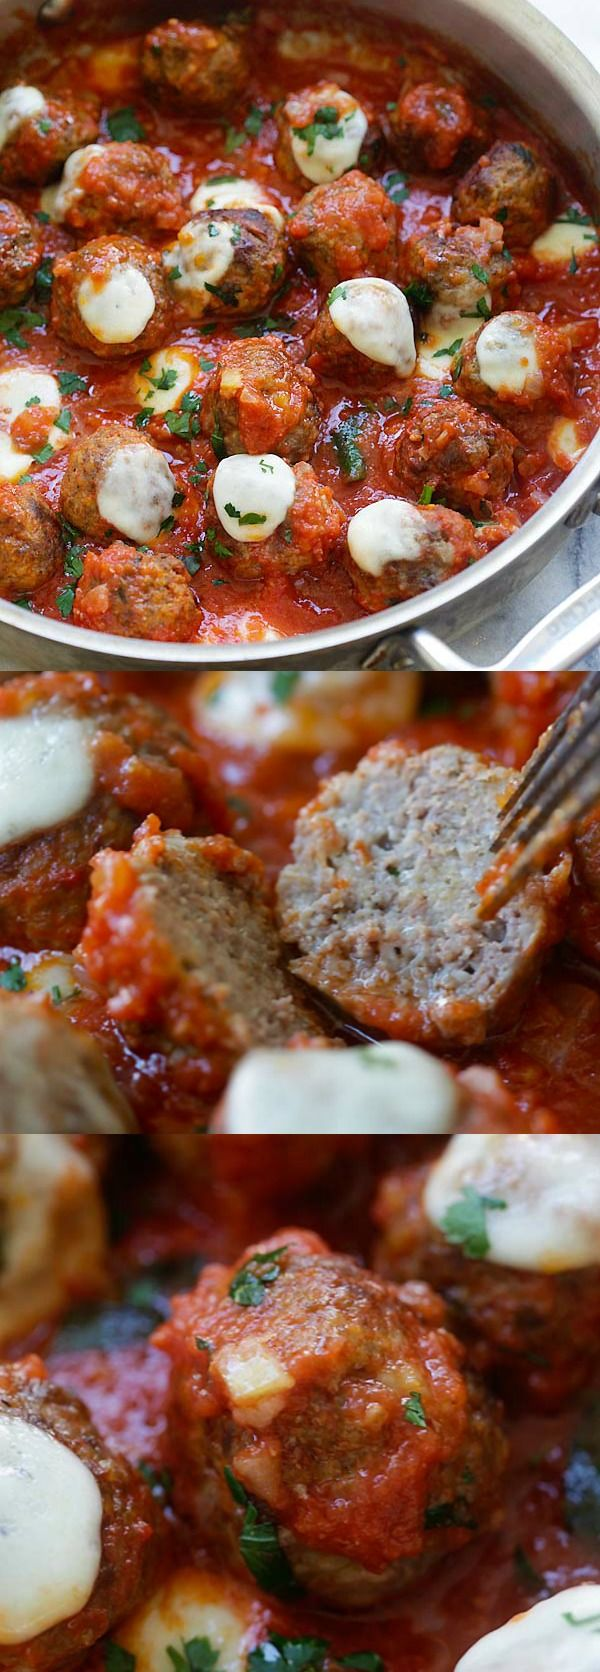 Meatball Casserole – one pot juicy and delicious meatballs in tomato sauce and topped with mozzarella cheese, homemade comfort food | rasamalaysia.c